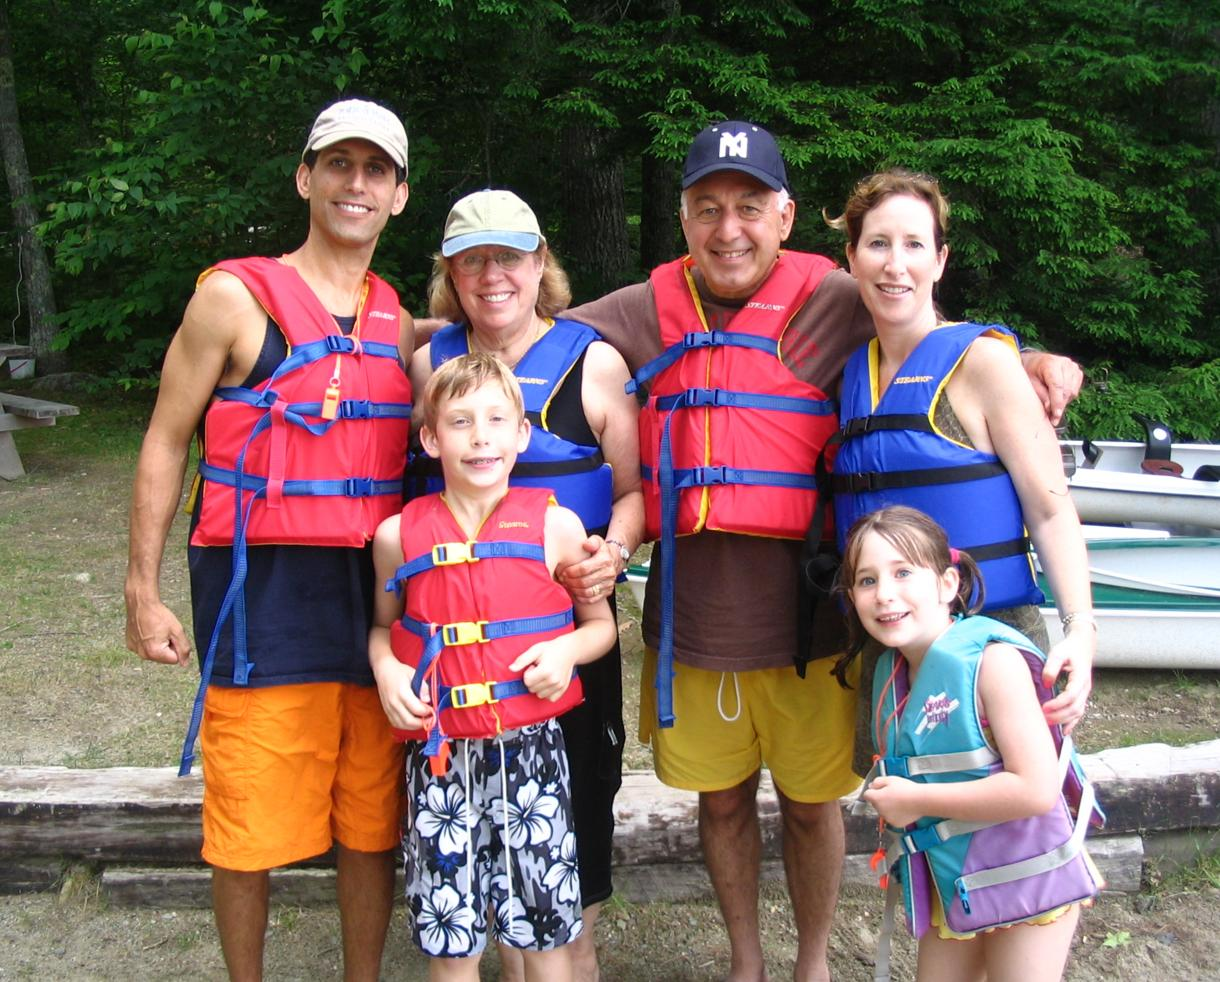 20% Off Week of Medomak Family Camp in Maine - $500 Deposit Paid Now